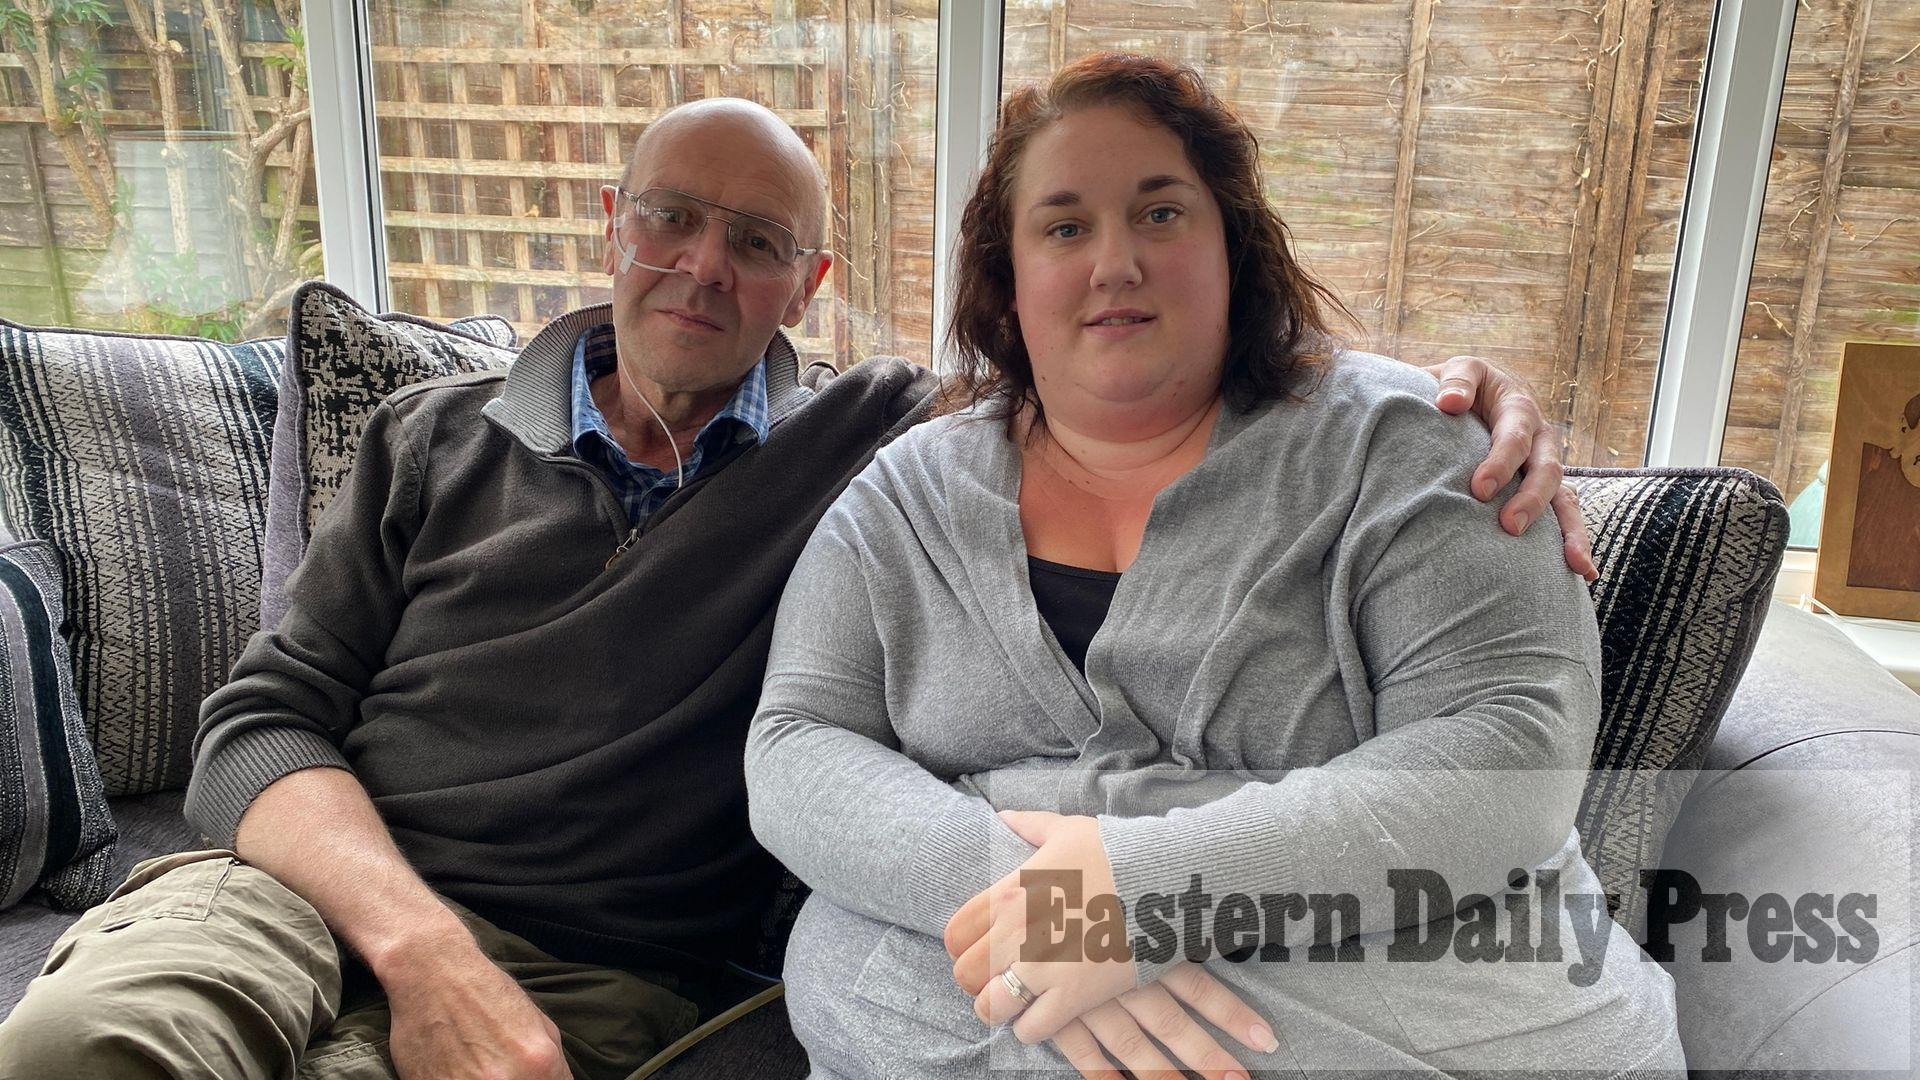 Victims of botched surgery can now support each other through their suffering